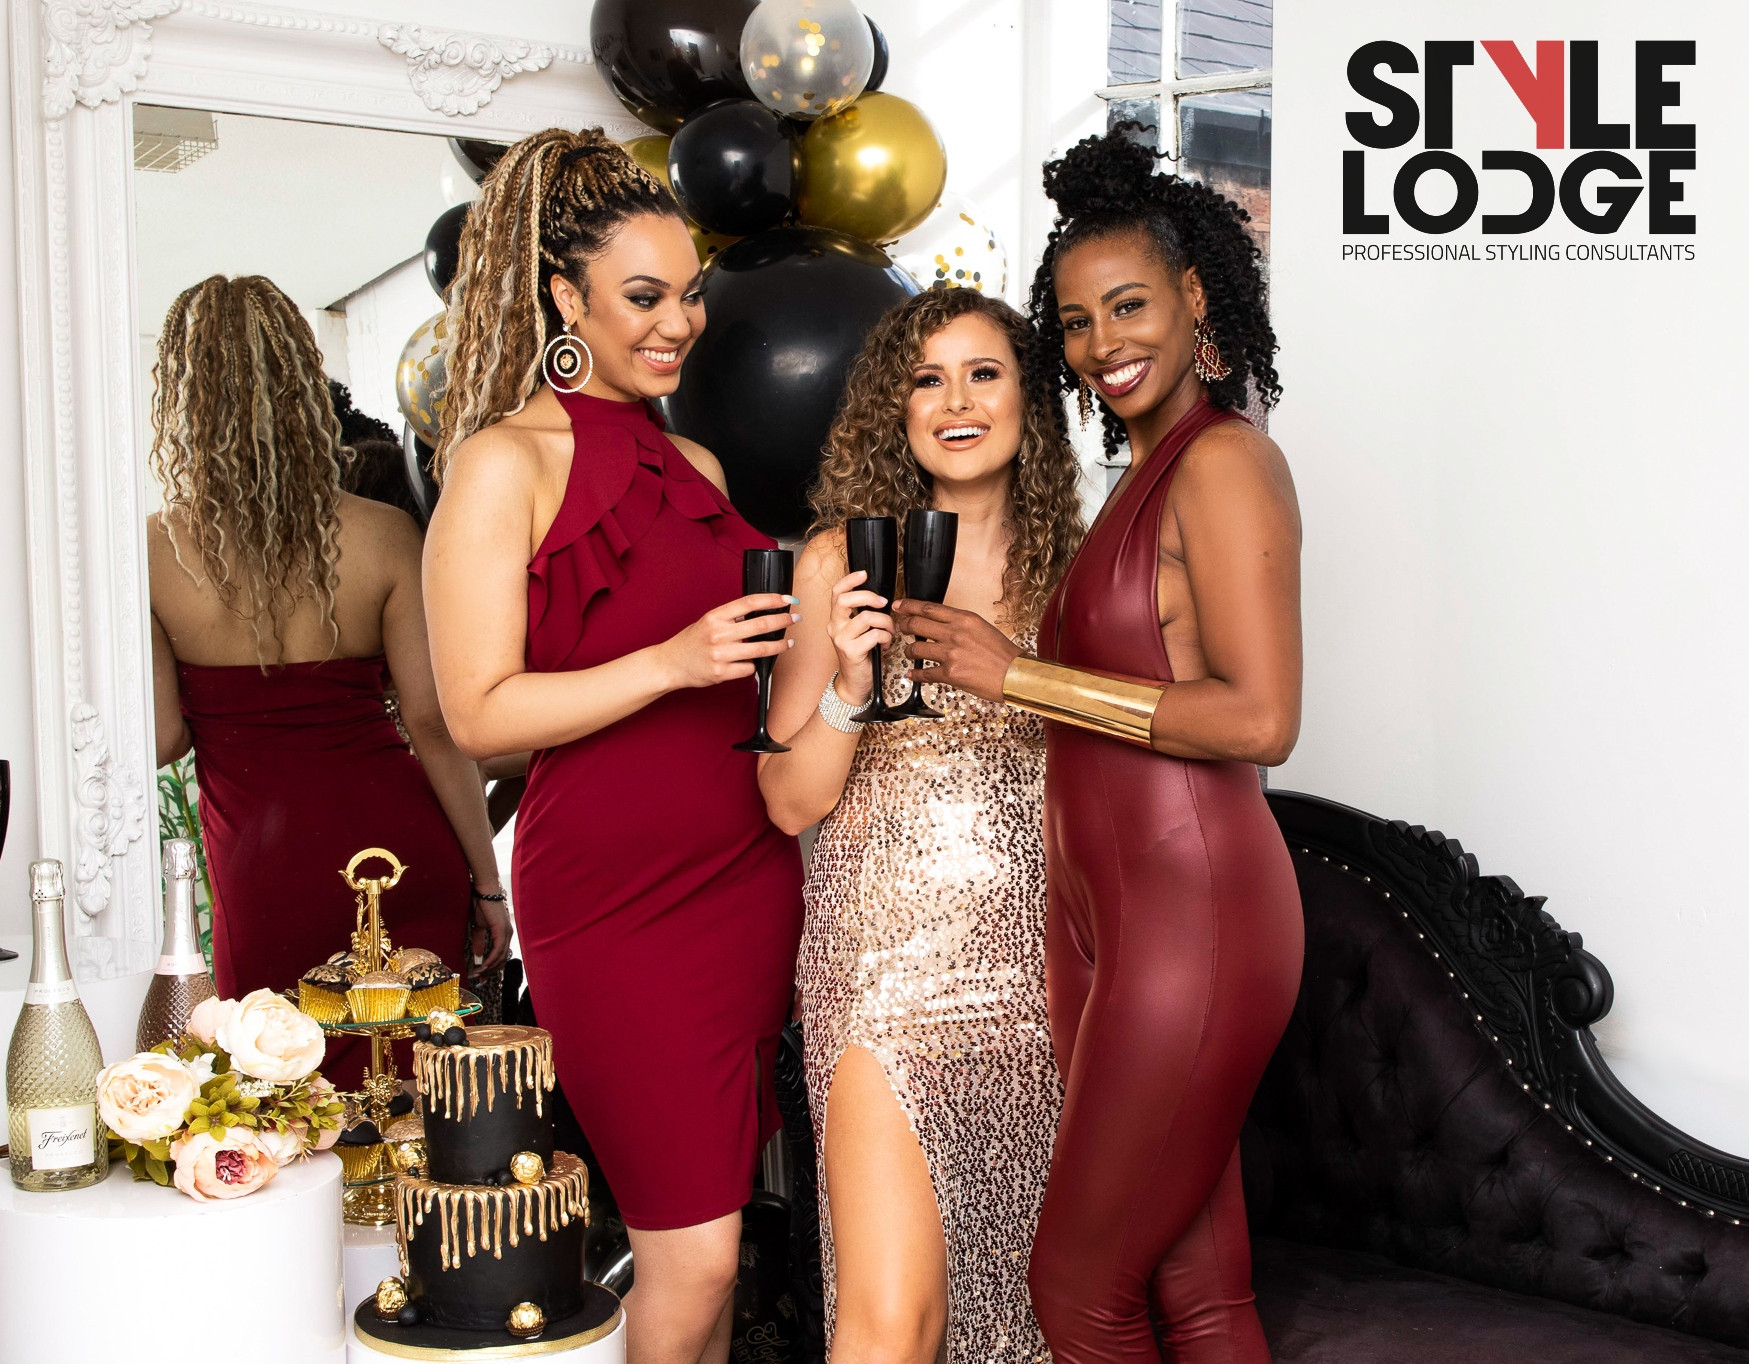 STYLE AND PAMPER PARTY (Standard)